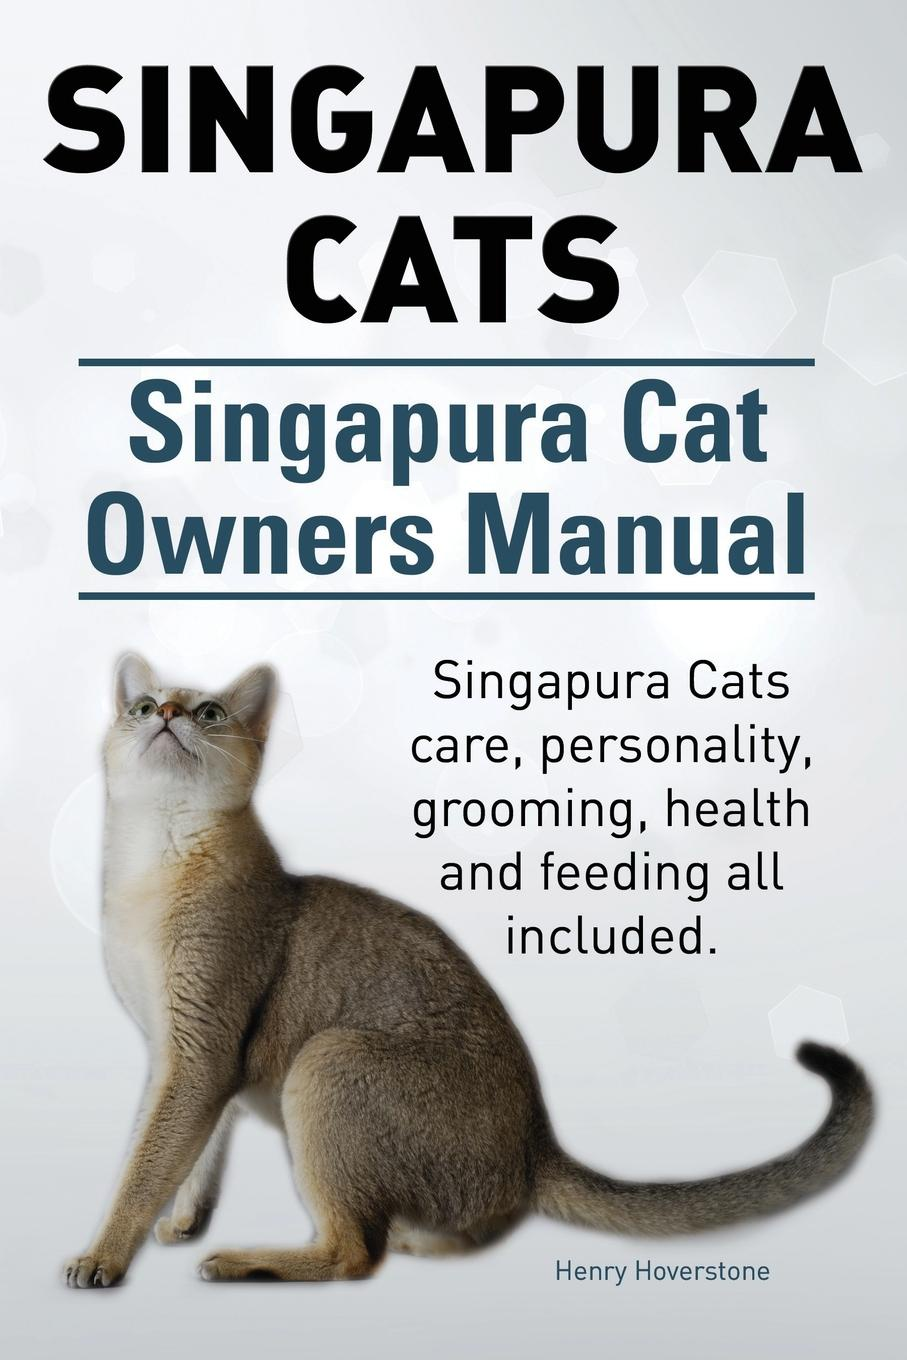 Henry Hoverstone Singapura Cats. Singapura Cat Owners Manual. Singapura Cats care, personality, grooming, health and feeding all included. the eyes of the cat